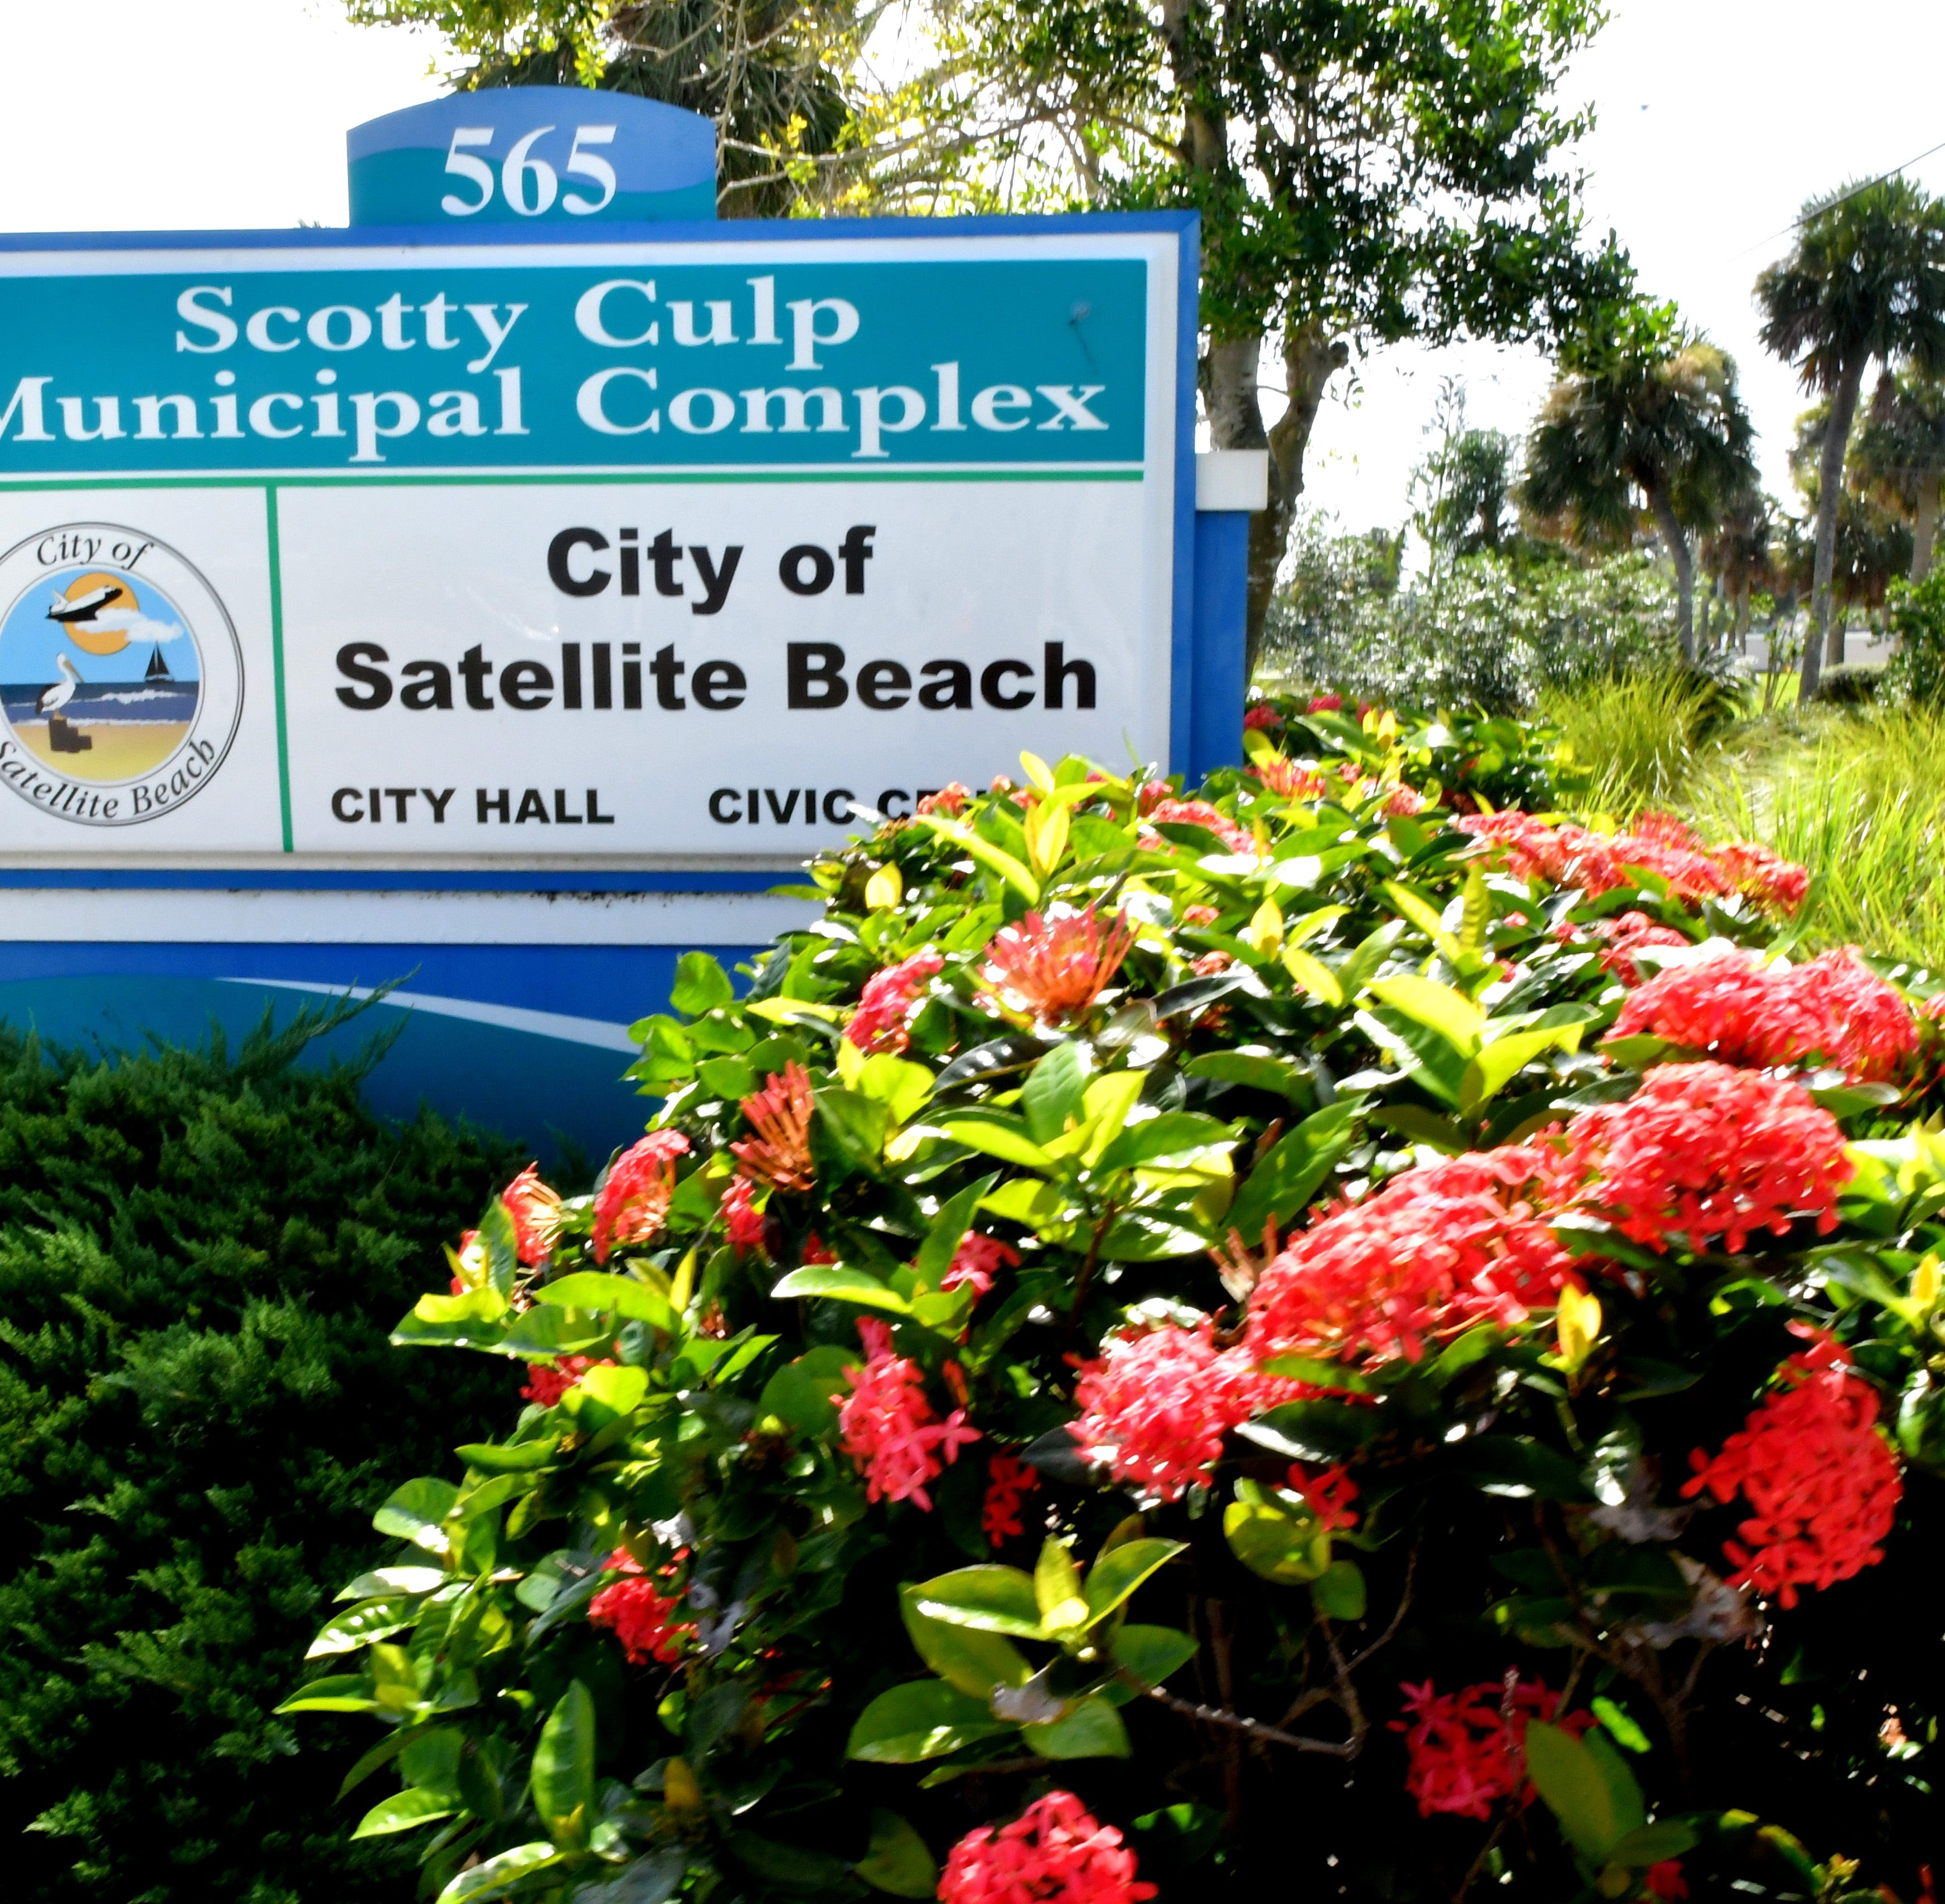 'Aggressive media' too much? Satellite Beach officials considering how to respond